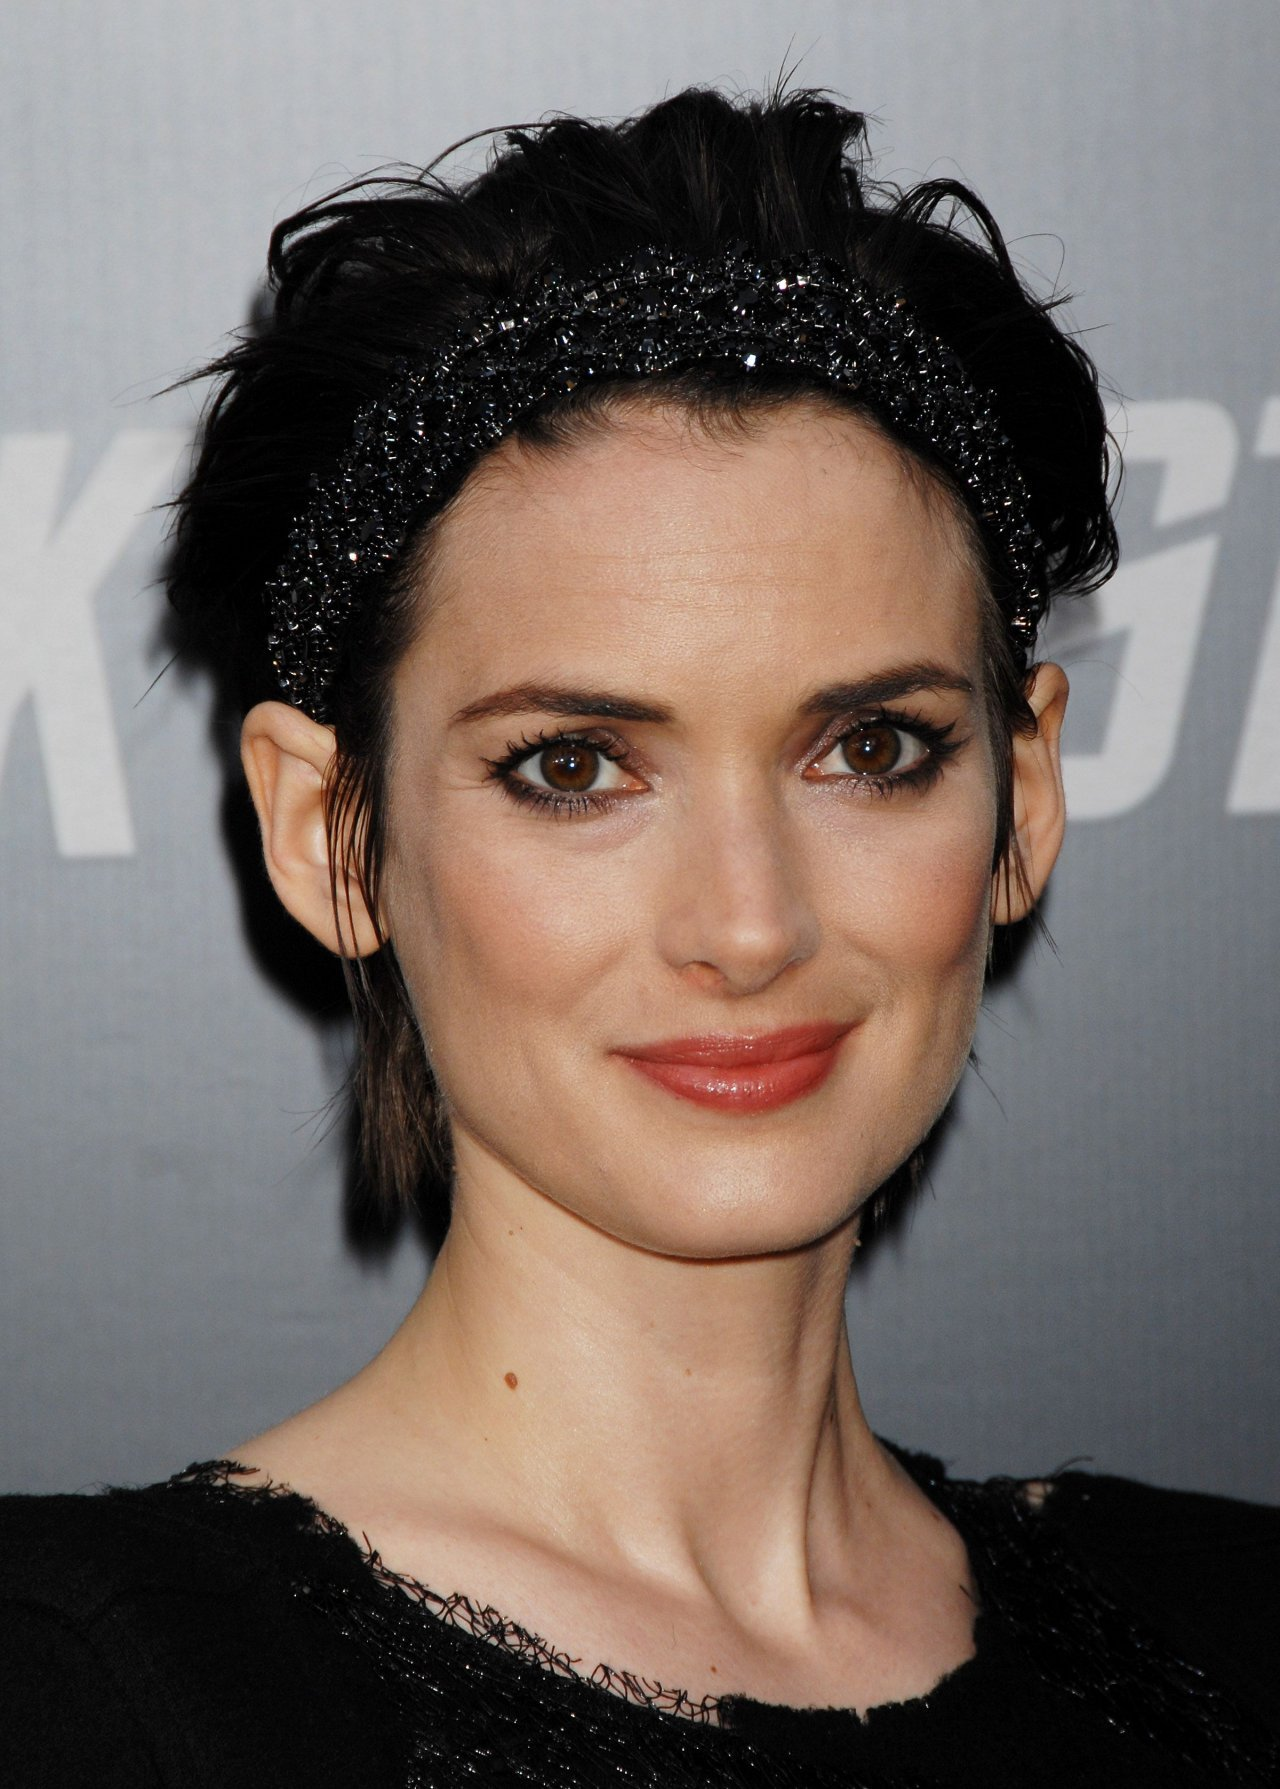 Winona Ryder leaked wallpapers